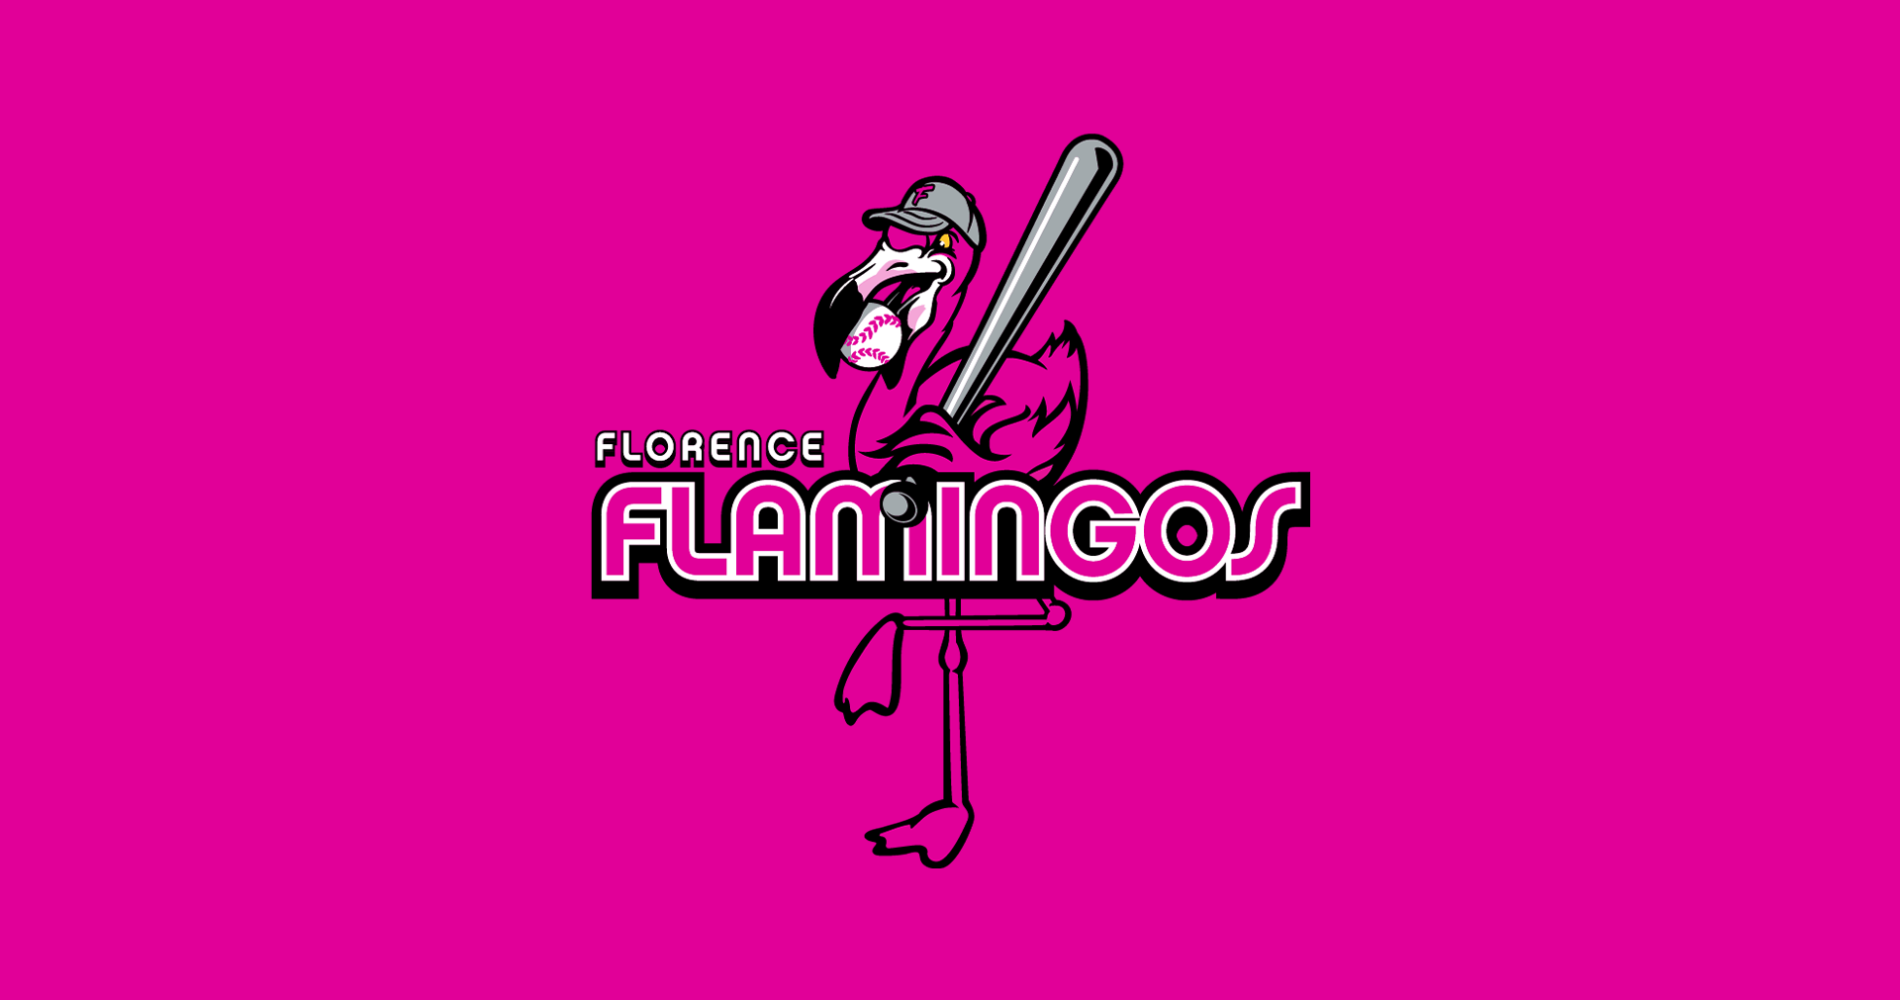 We are the Florence Flamingos